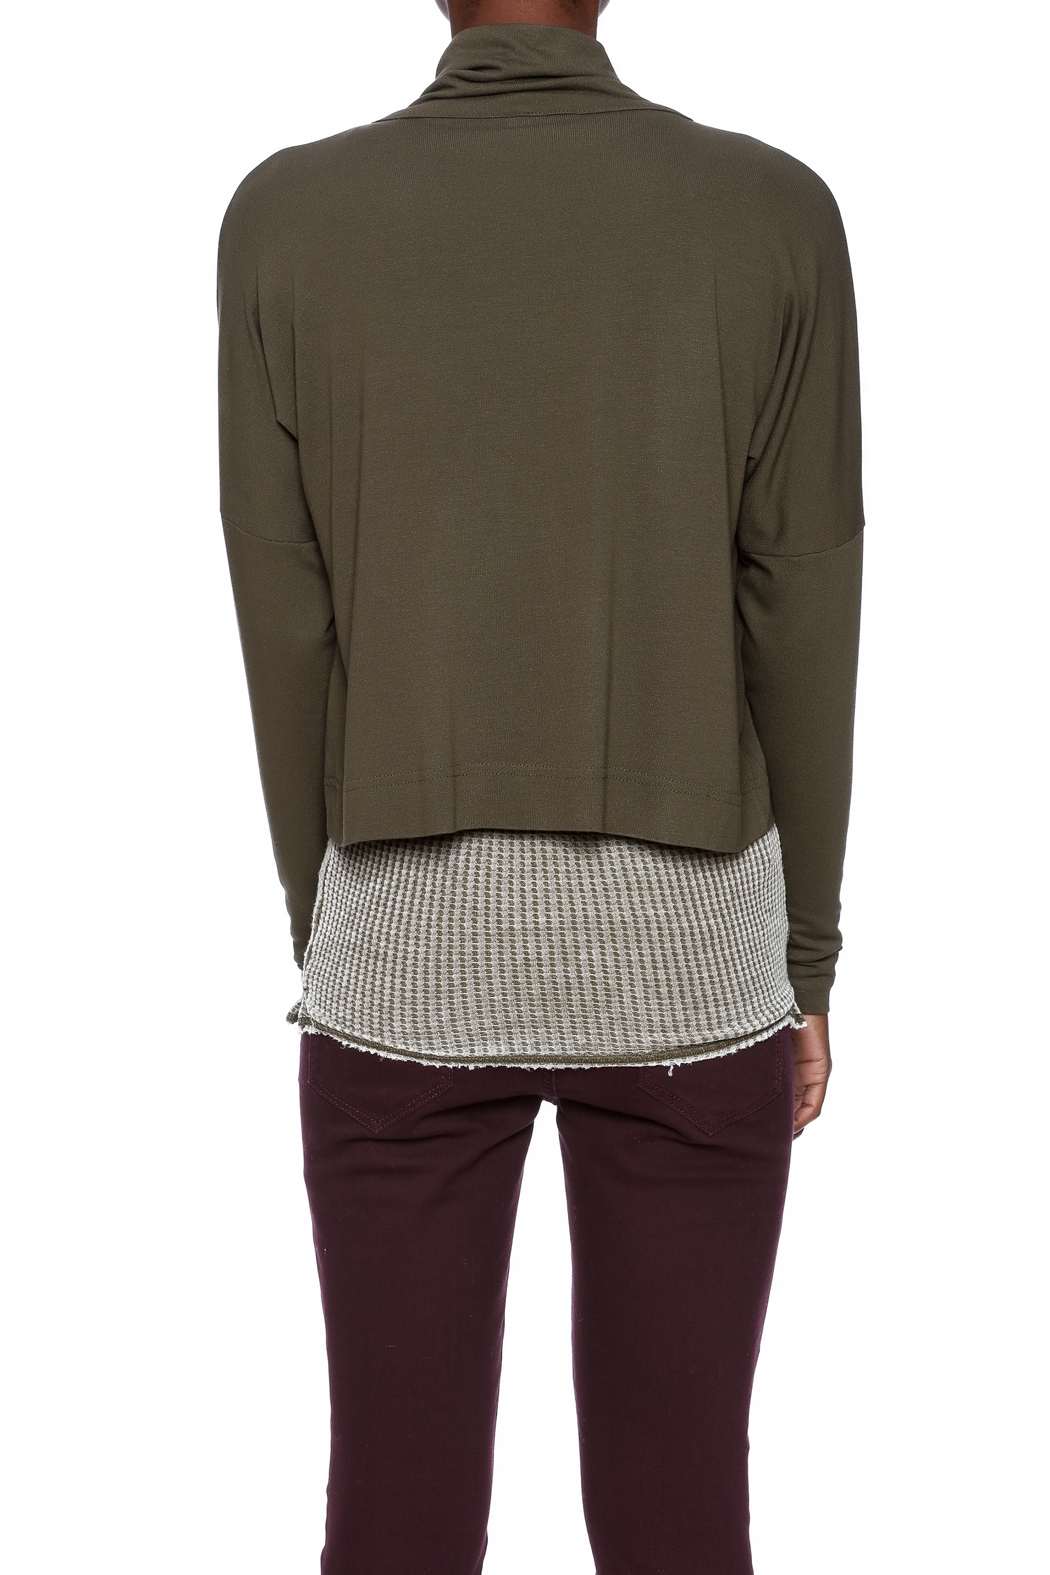 Favori Olive Cropped Jacket - Back Cropped Image